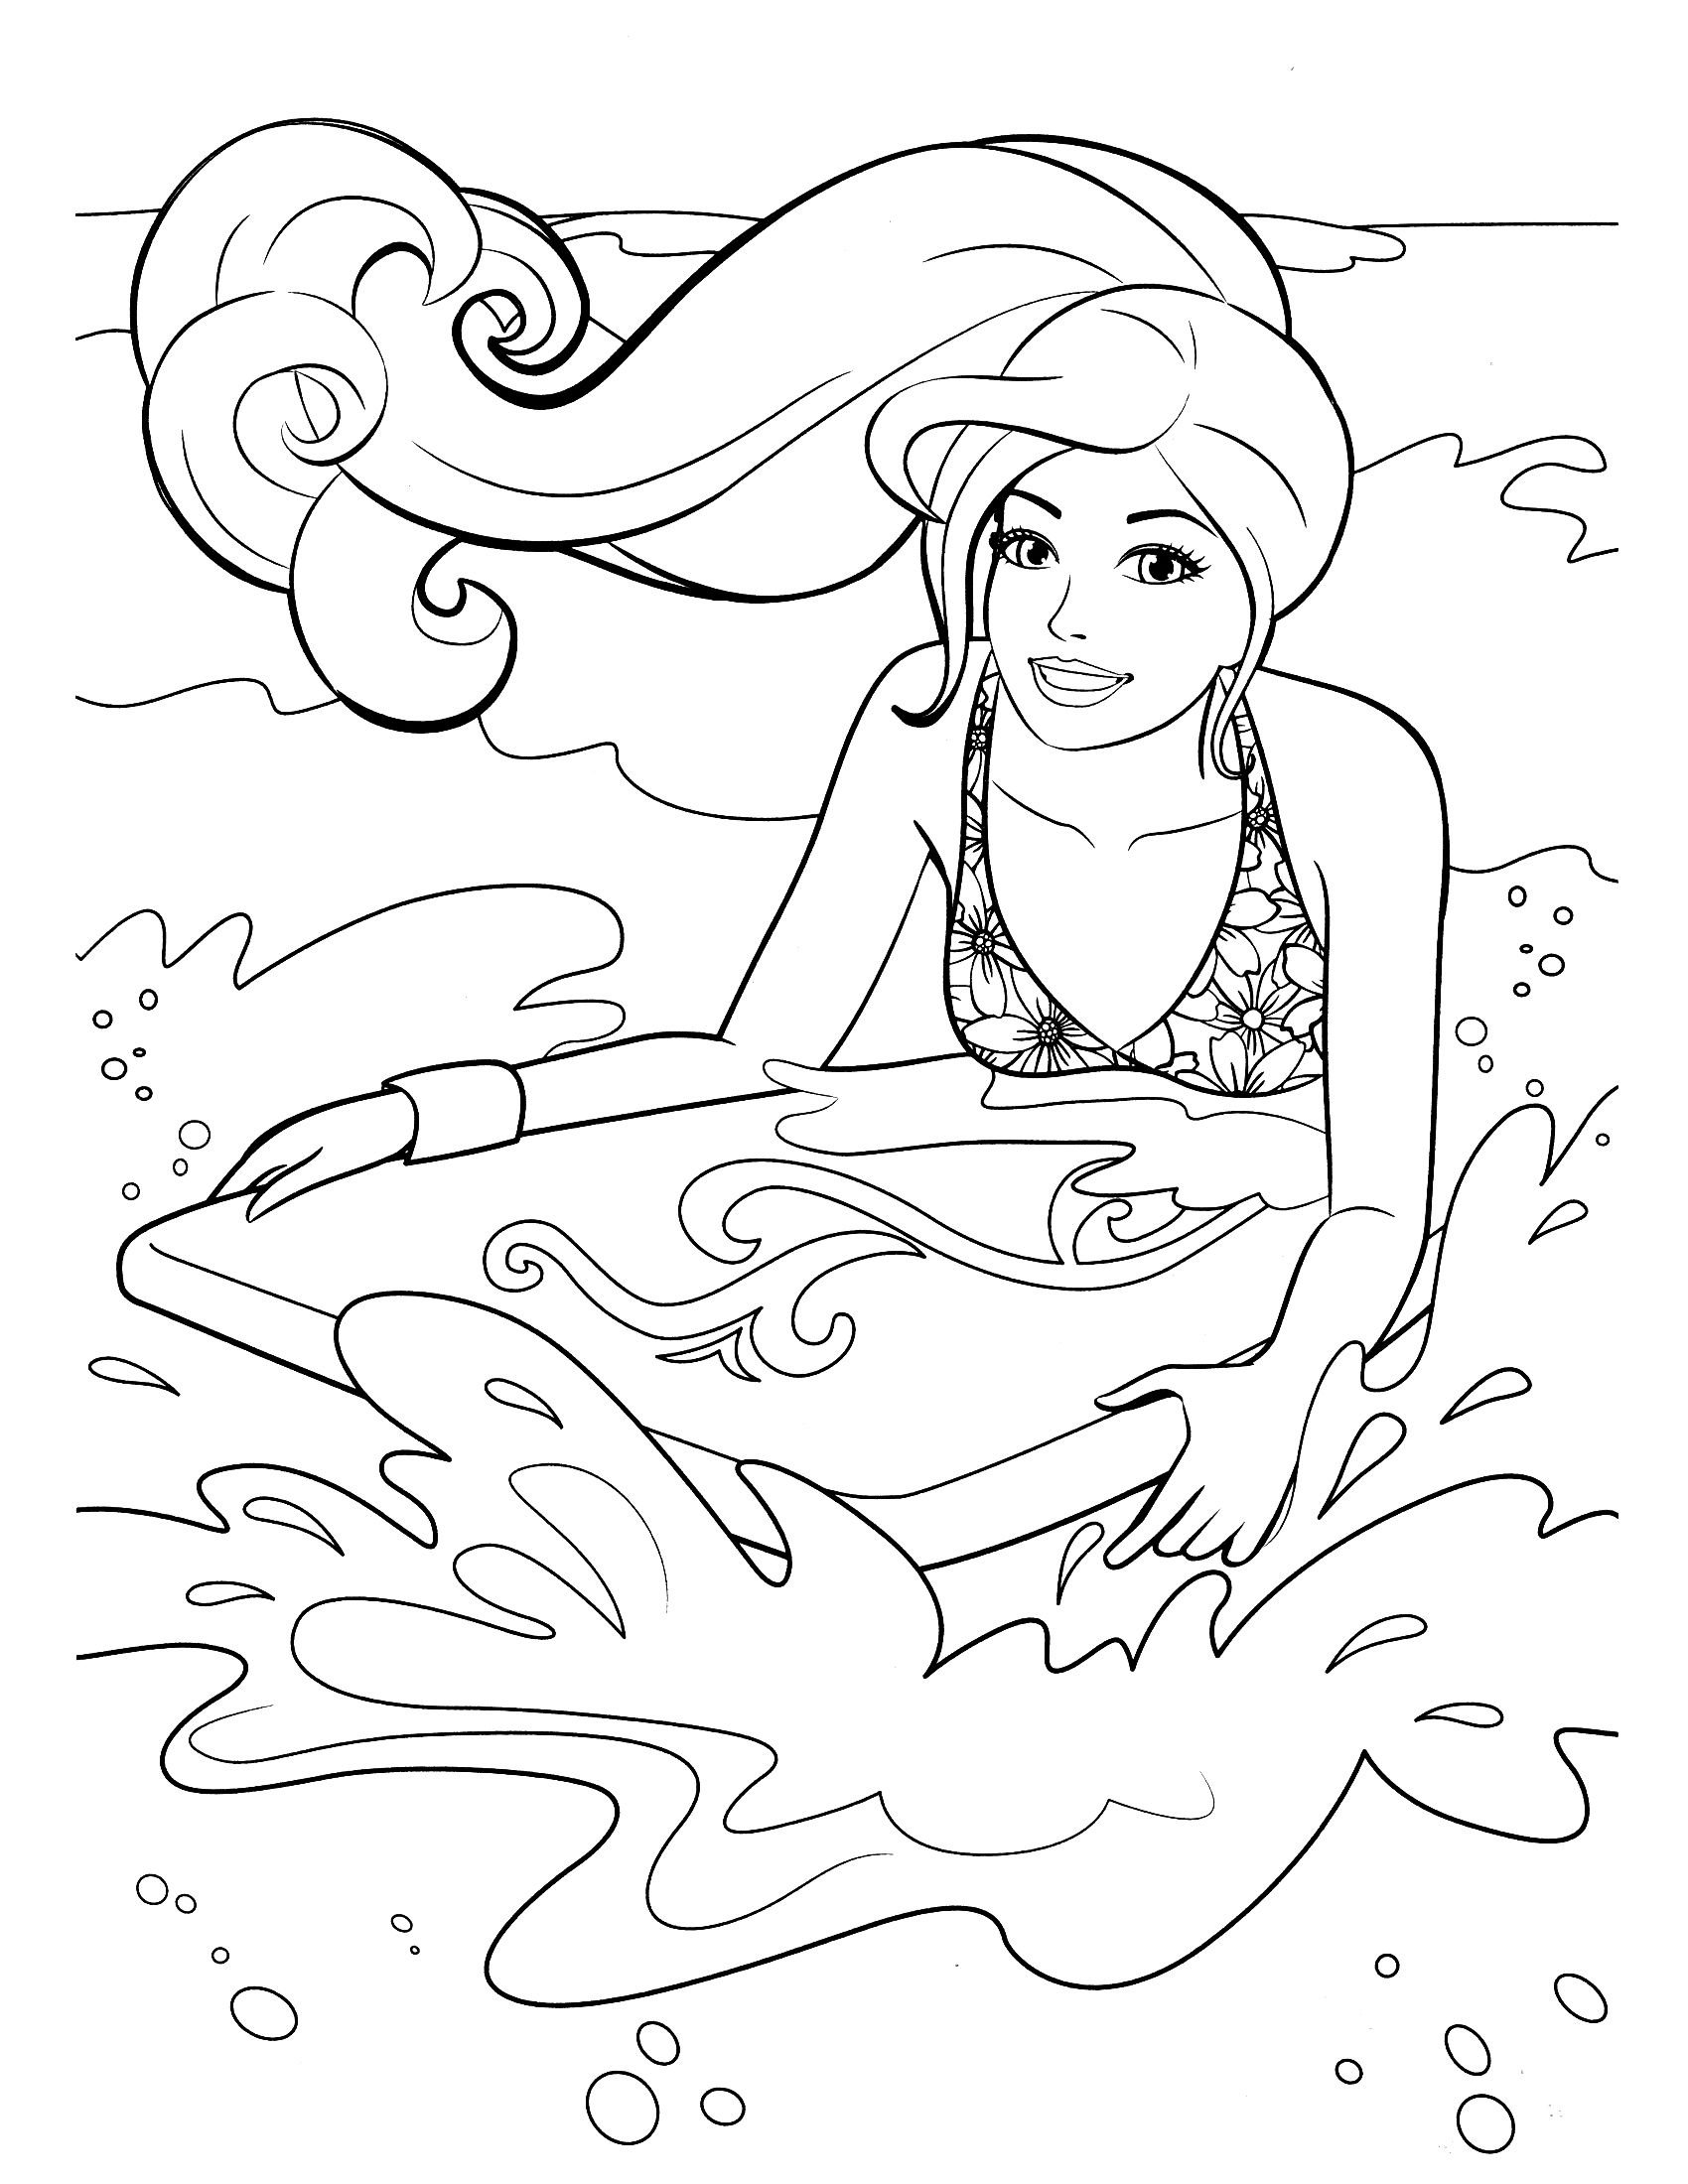 Barbie Coloring Pages - Bing Images | color time barbie | Pinterest ...